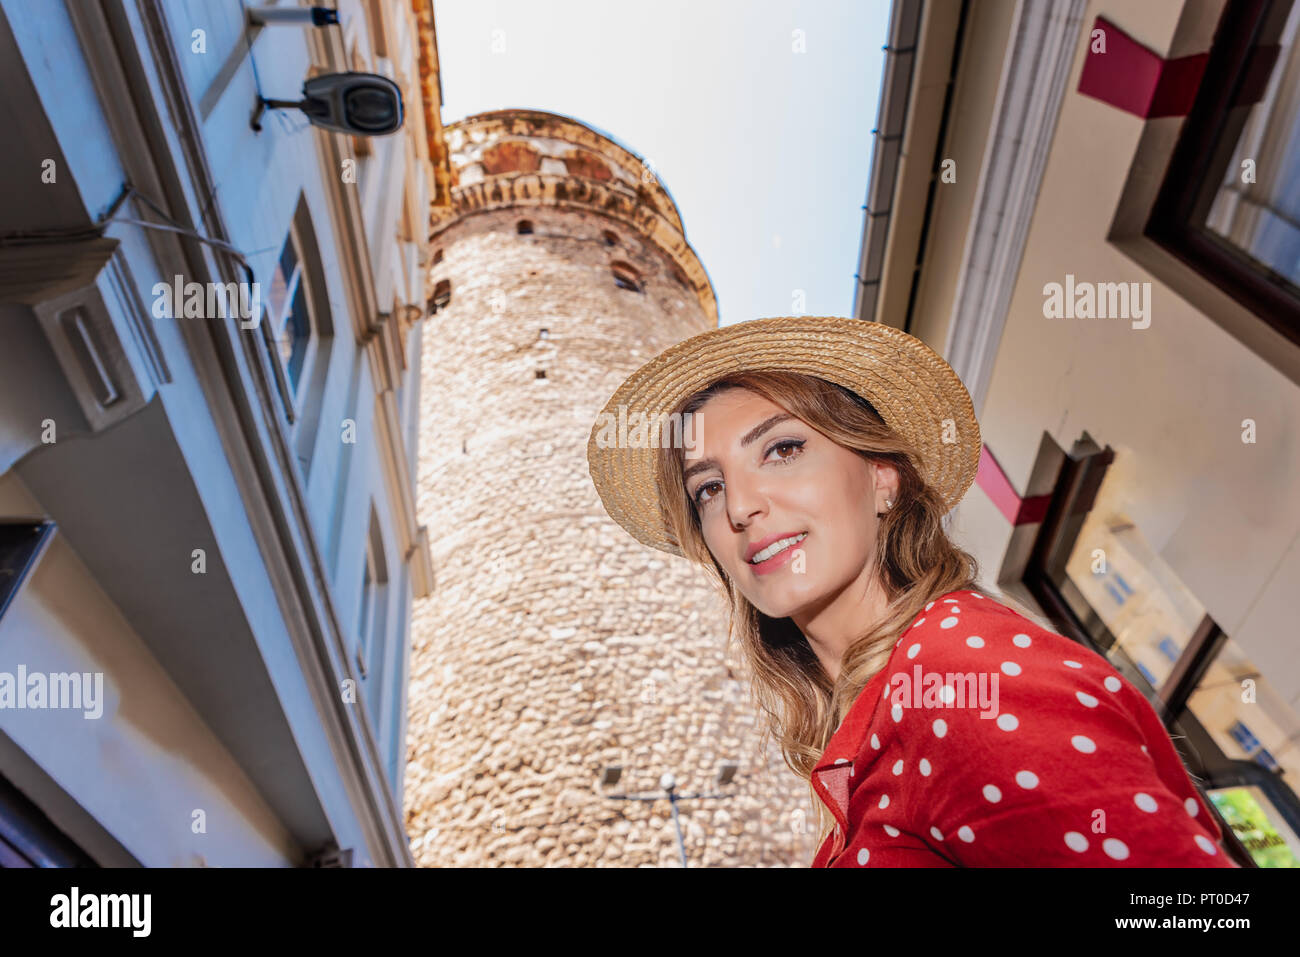 Turkish Female Hat Stock Photos & Turkish Female Hat Stock